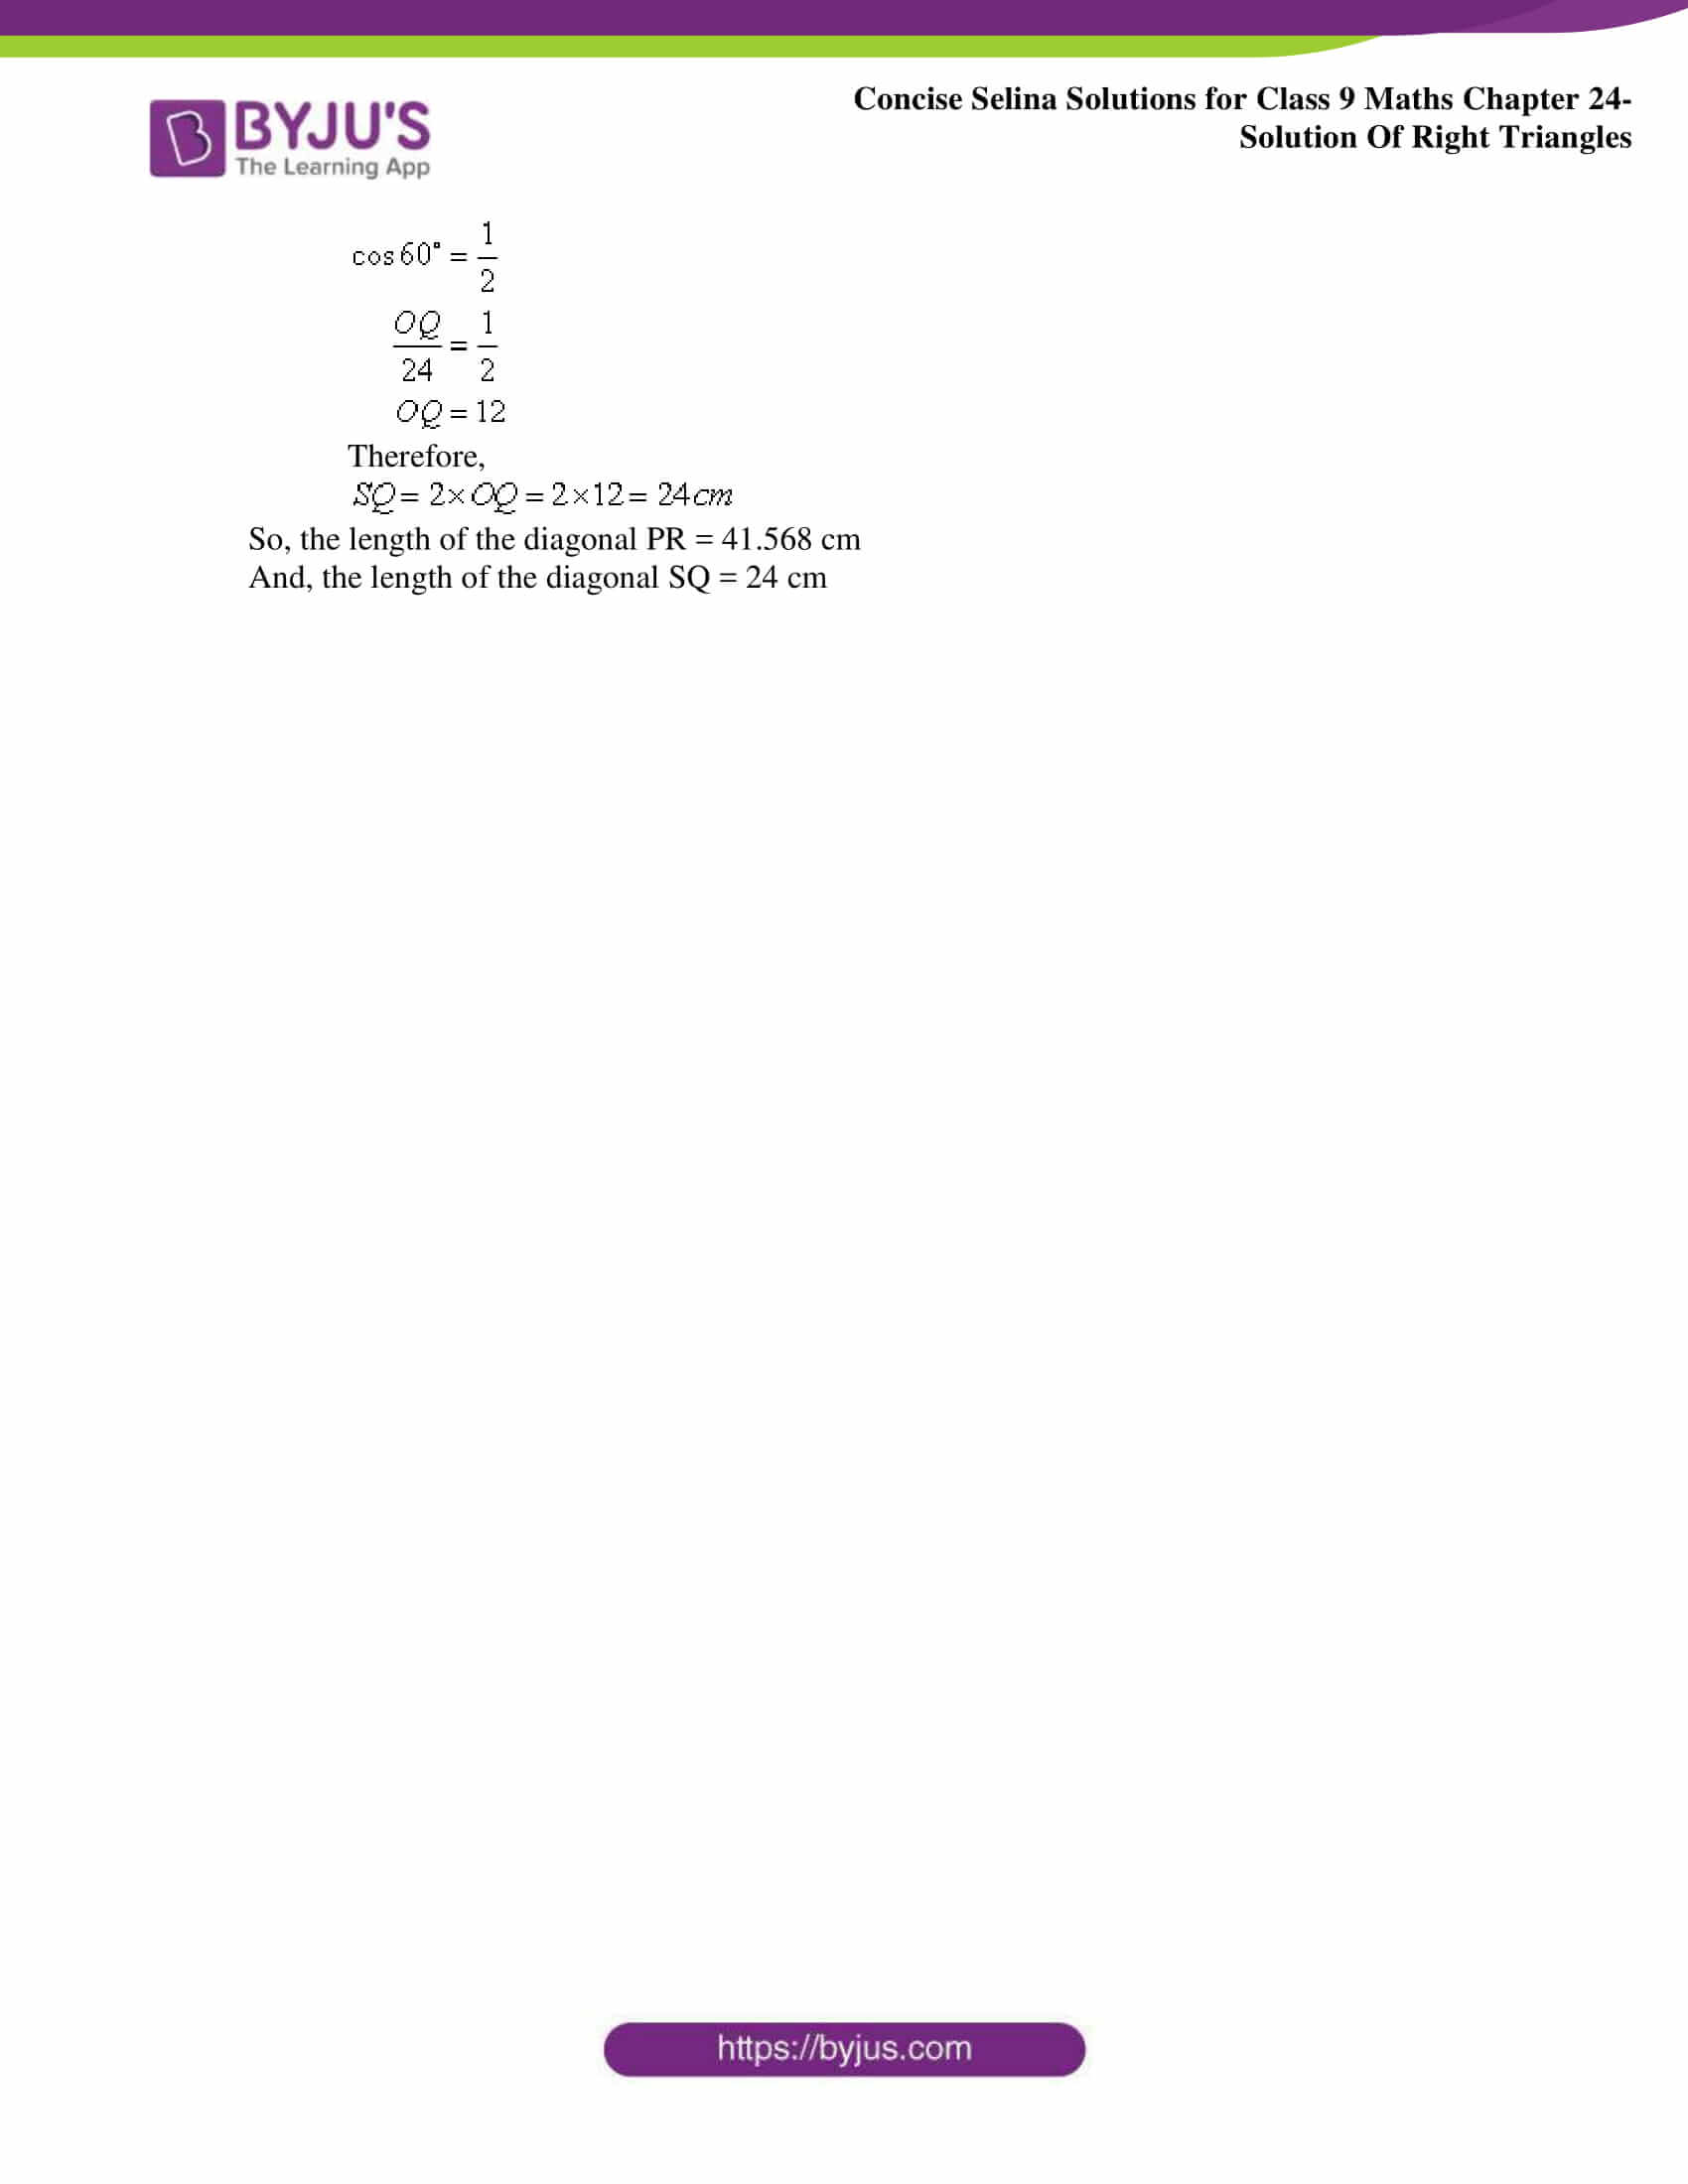 Concise Selina Solutions Class 9 Maths Chapter 24 Solution Of Right Triangles part 24